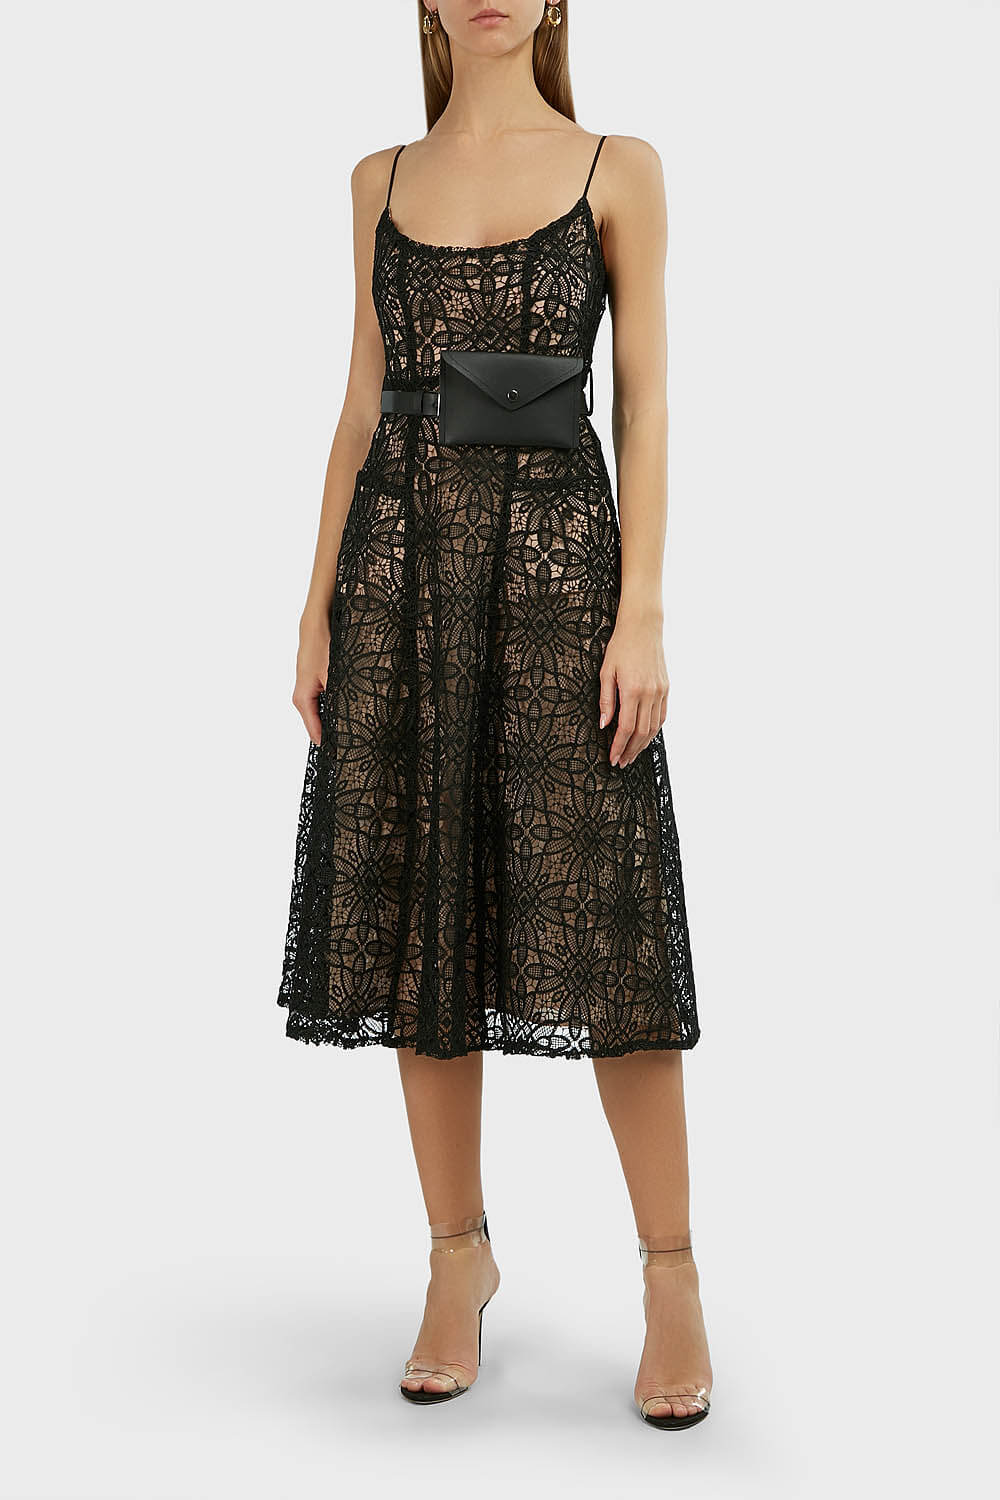 MISHA Marzia Belted Lace Dress